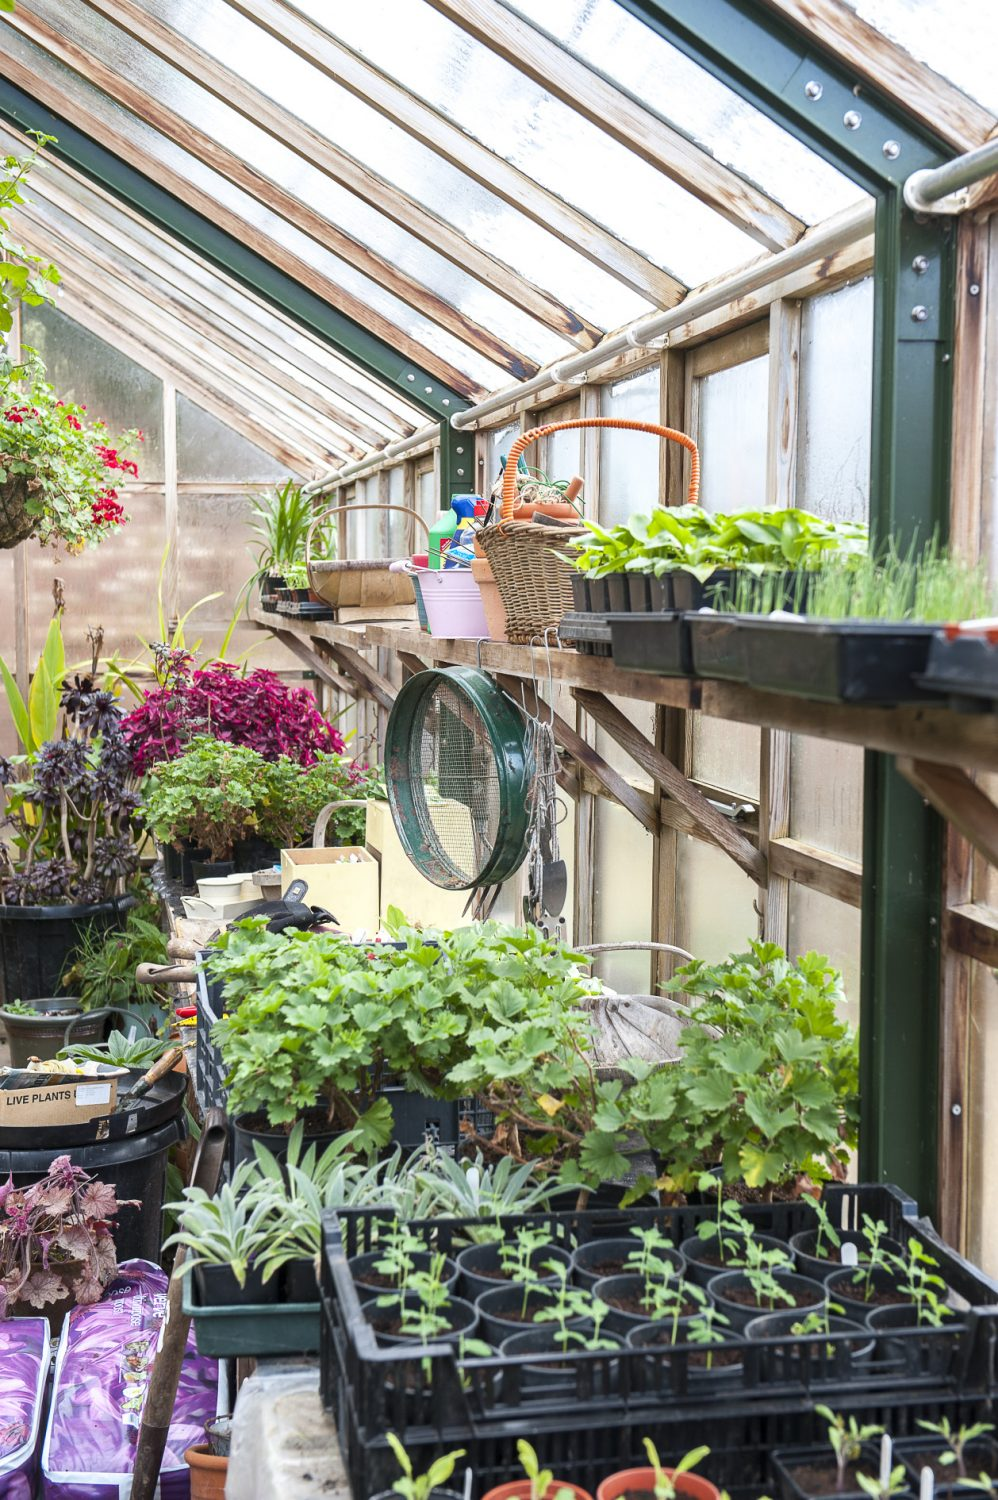 Benches inside the greenhouse are laden with all manner of seedlings, ready to be planted out once the risk of frosts has passed